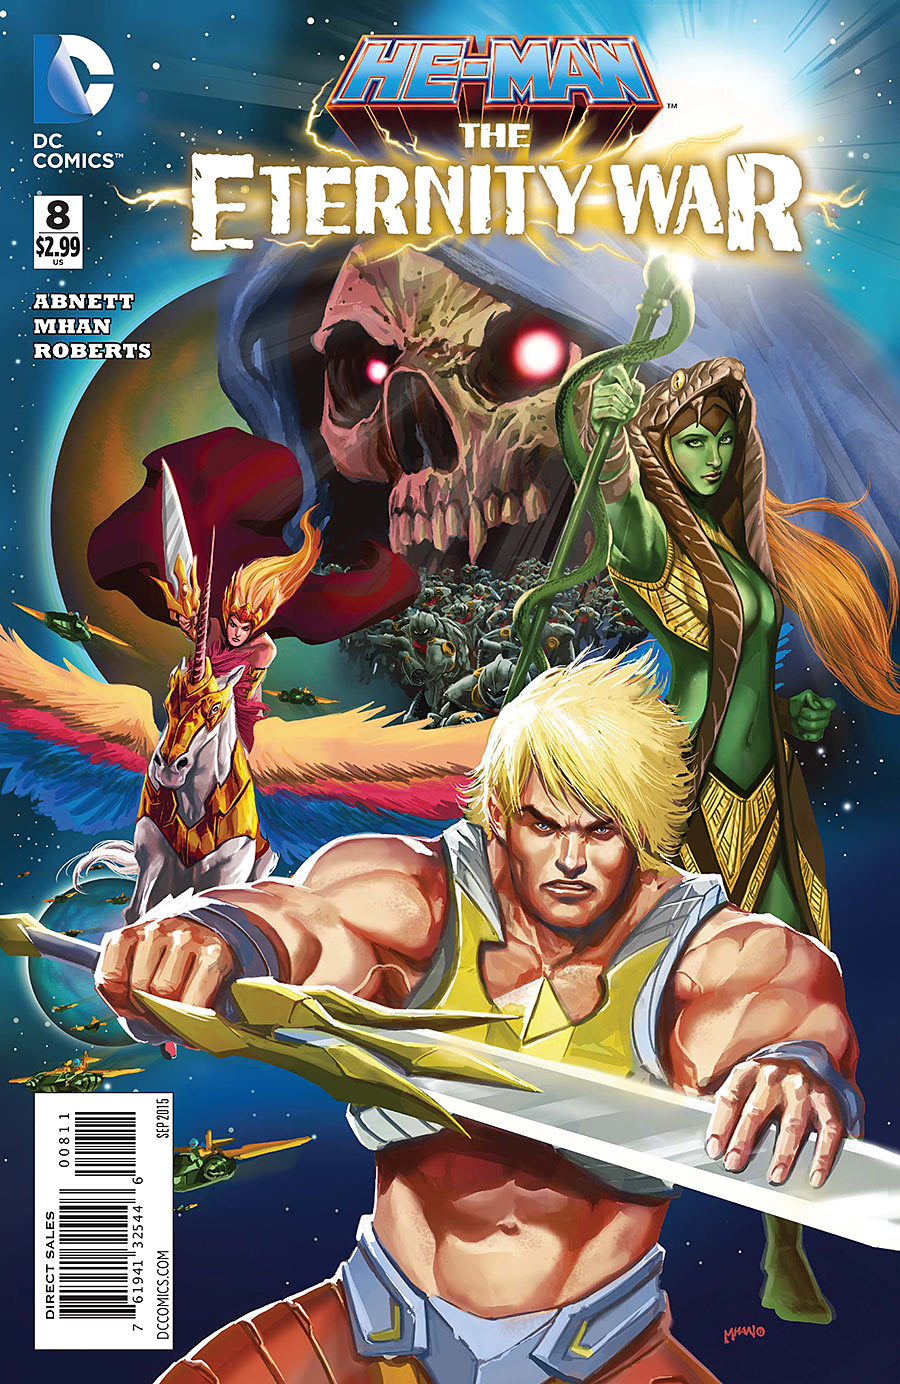 He-Man: The Eternity War Vol 1 8